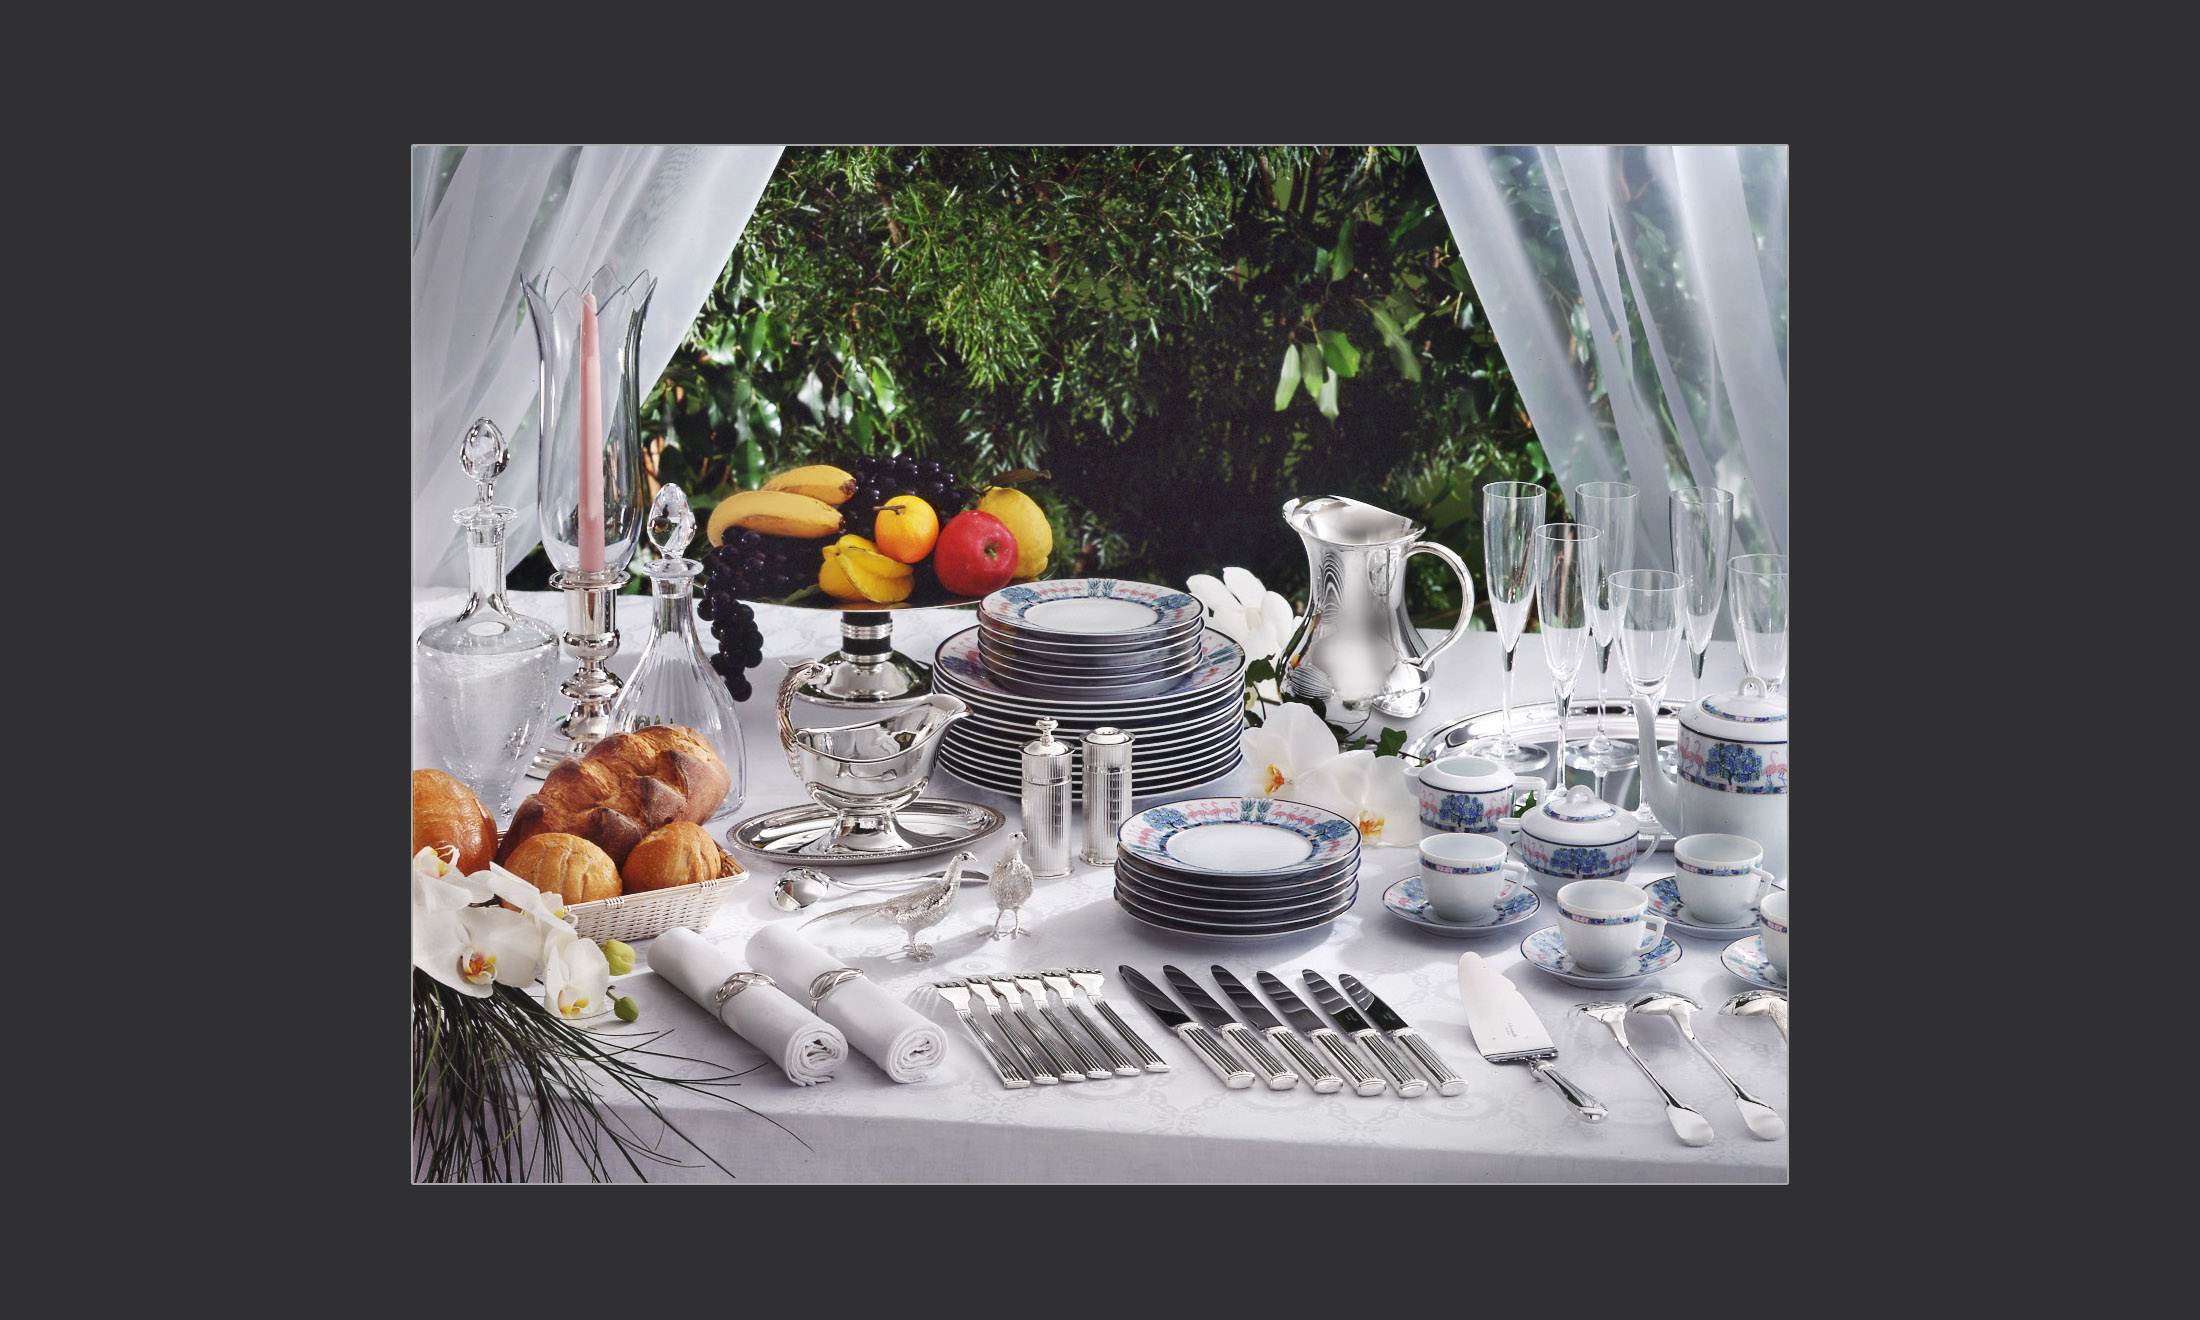 Table of utensils